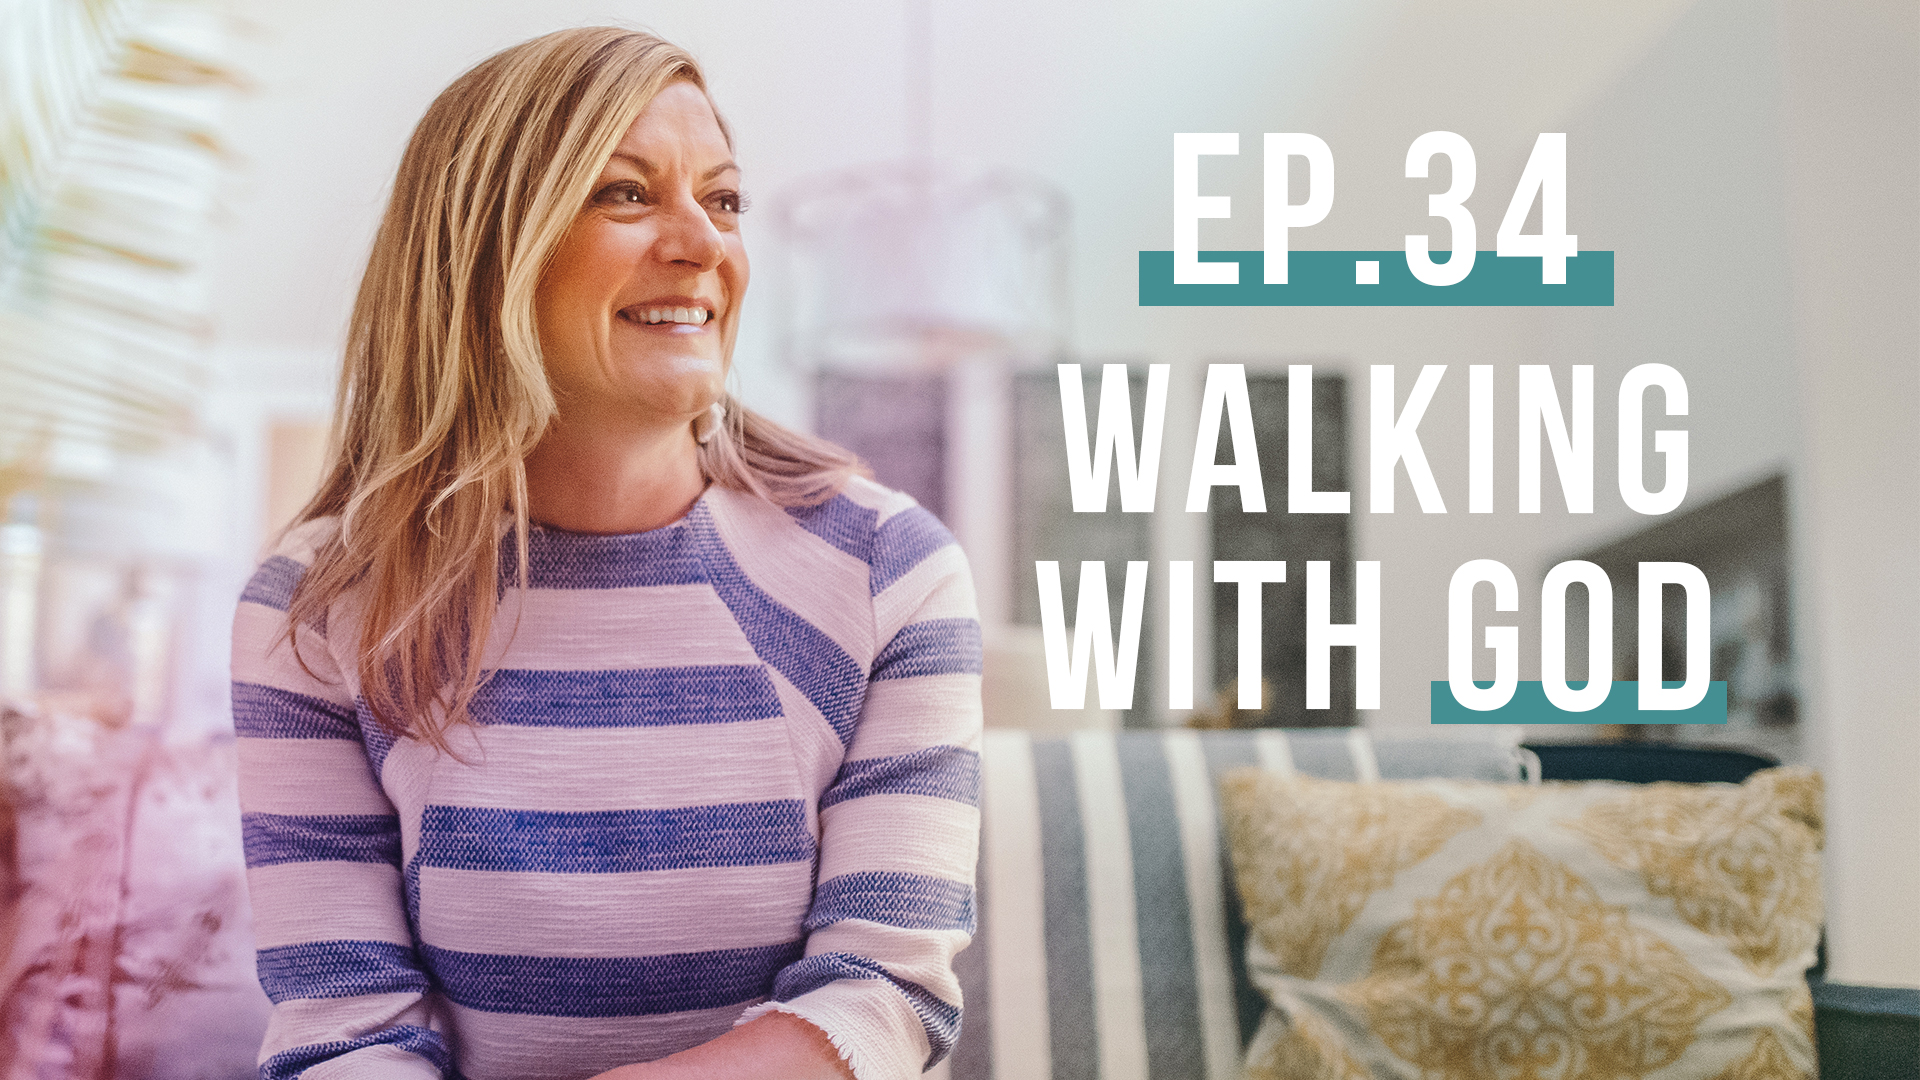 Walking with God | Let's Be Real, Ep. 34